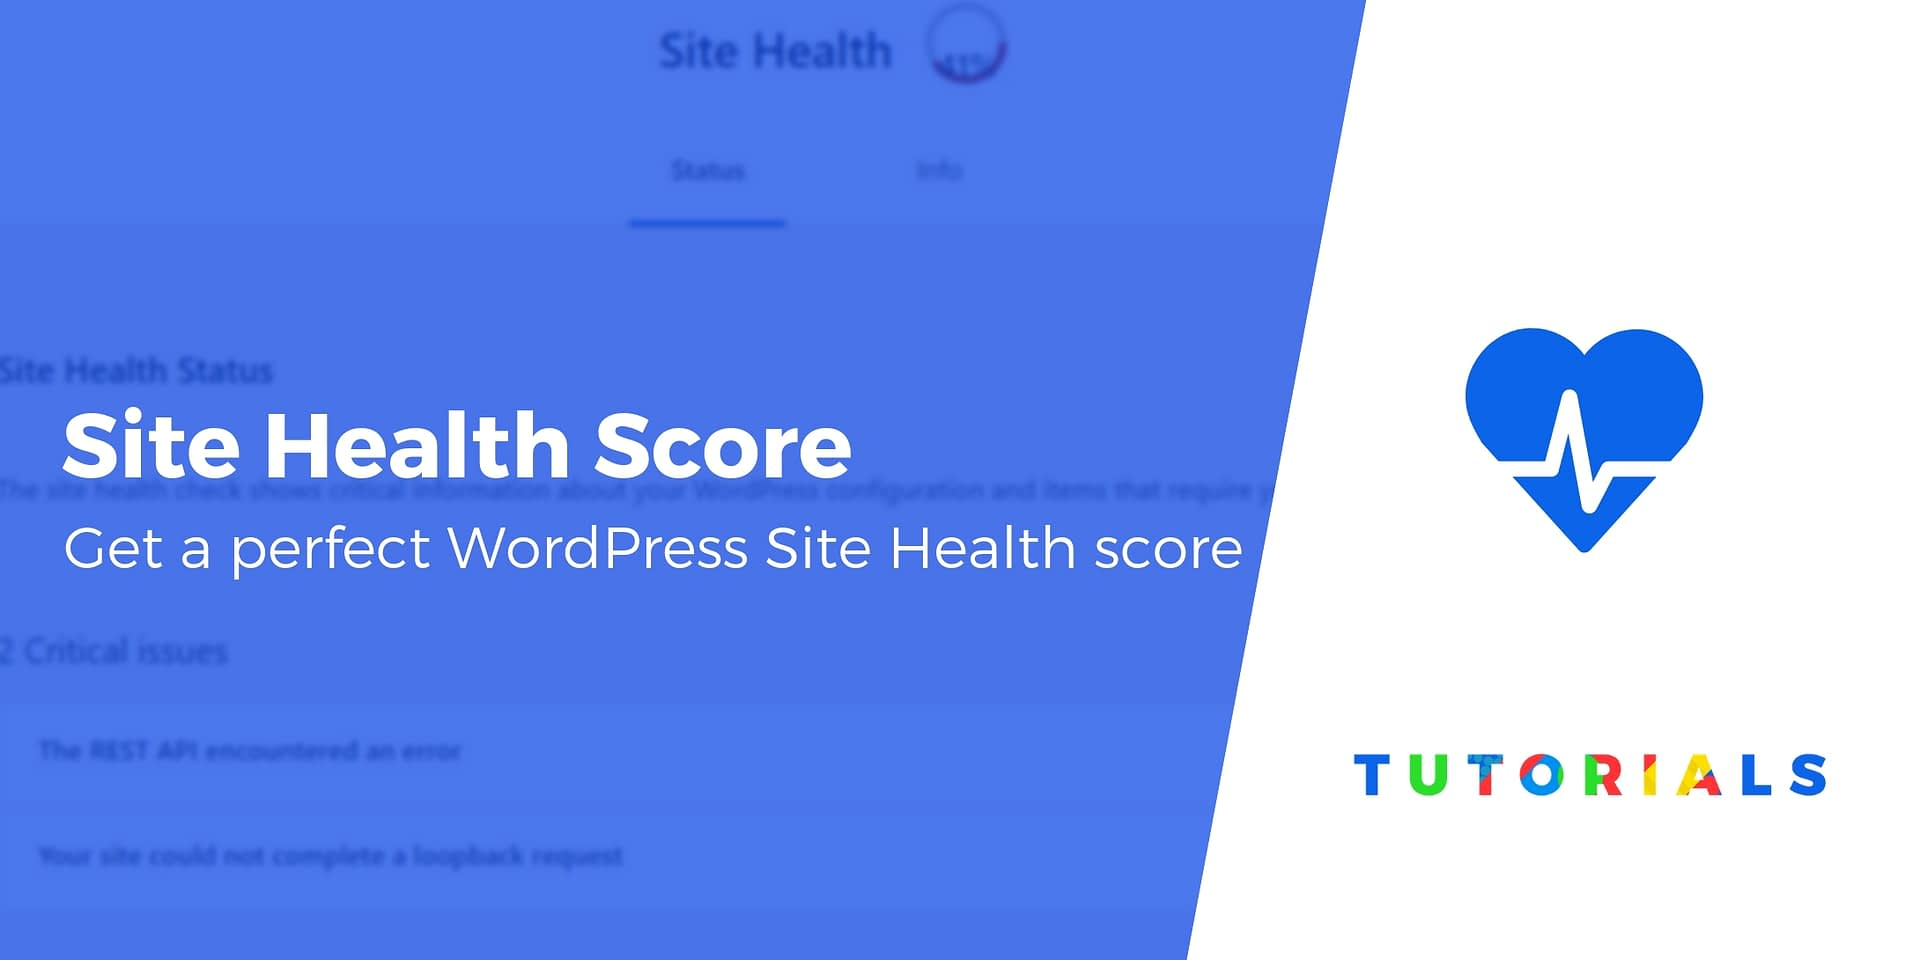 10 Tips to Get a 100% Site Health Score in WordPress 5 2